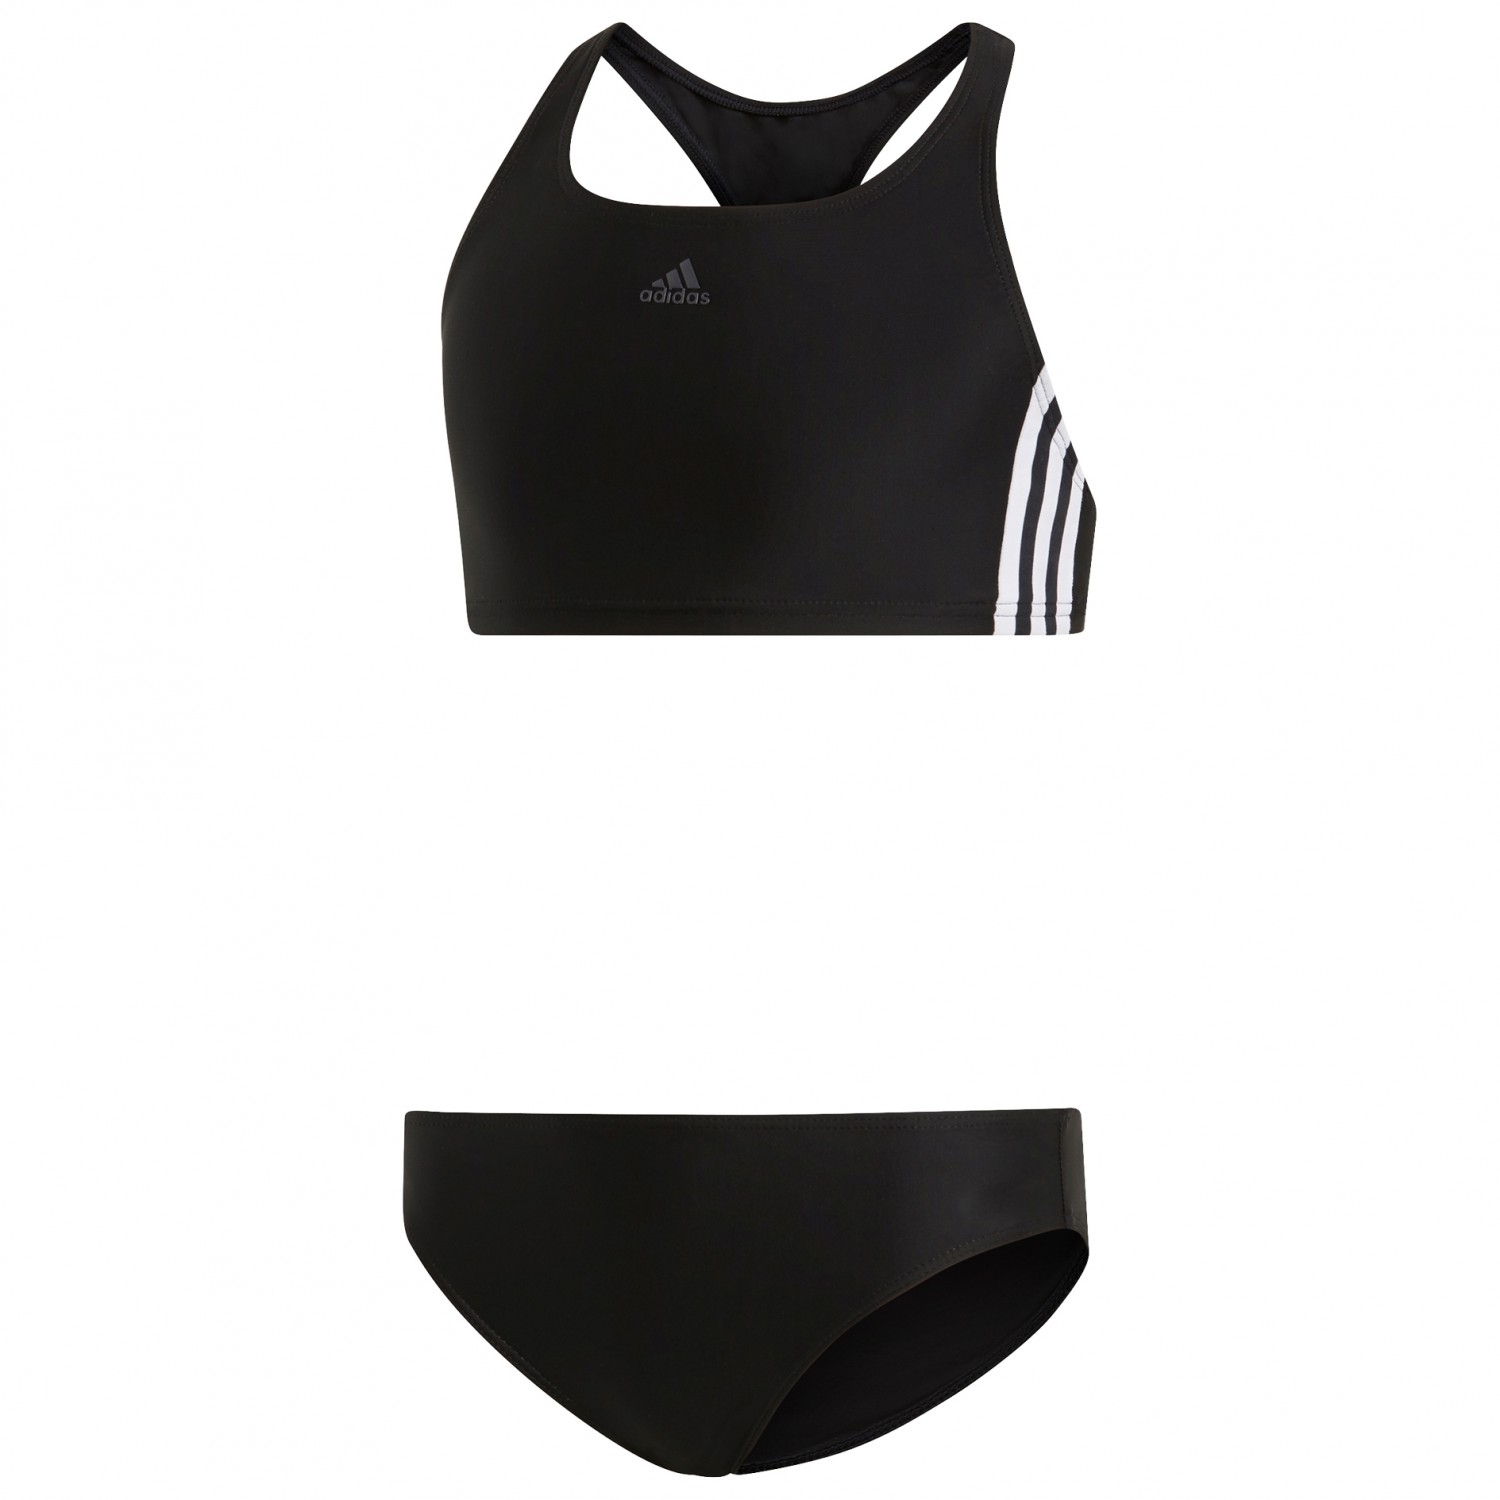 Adidas Streifen White128eu Y Fit Black Kid's 2 Piece 3 Bikini N8n0mwOv